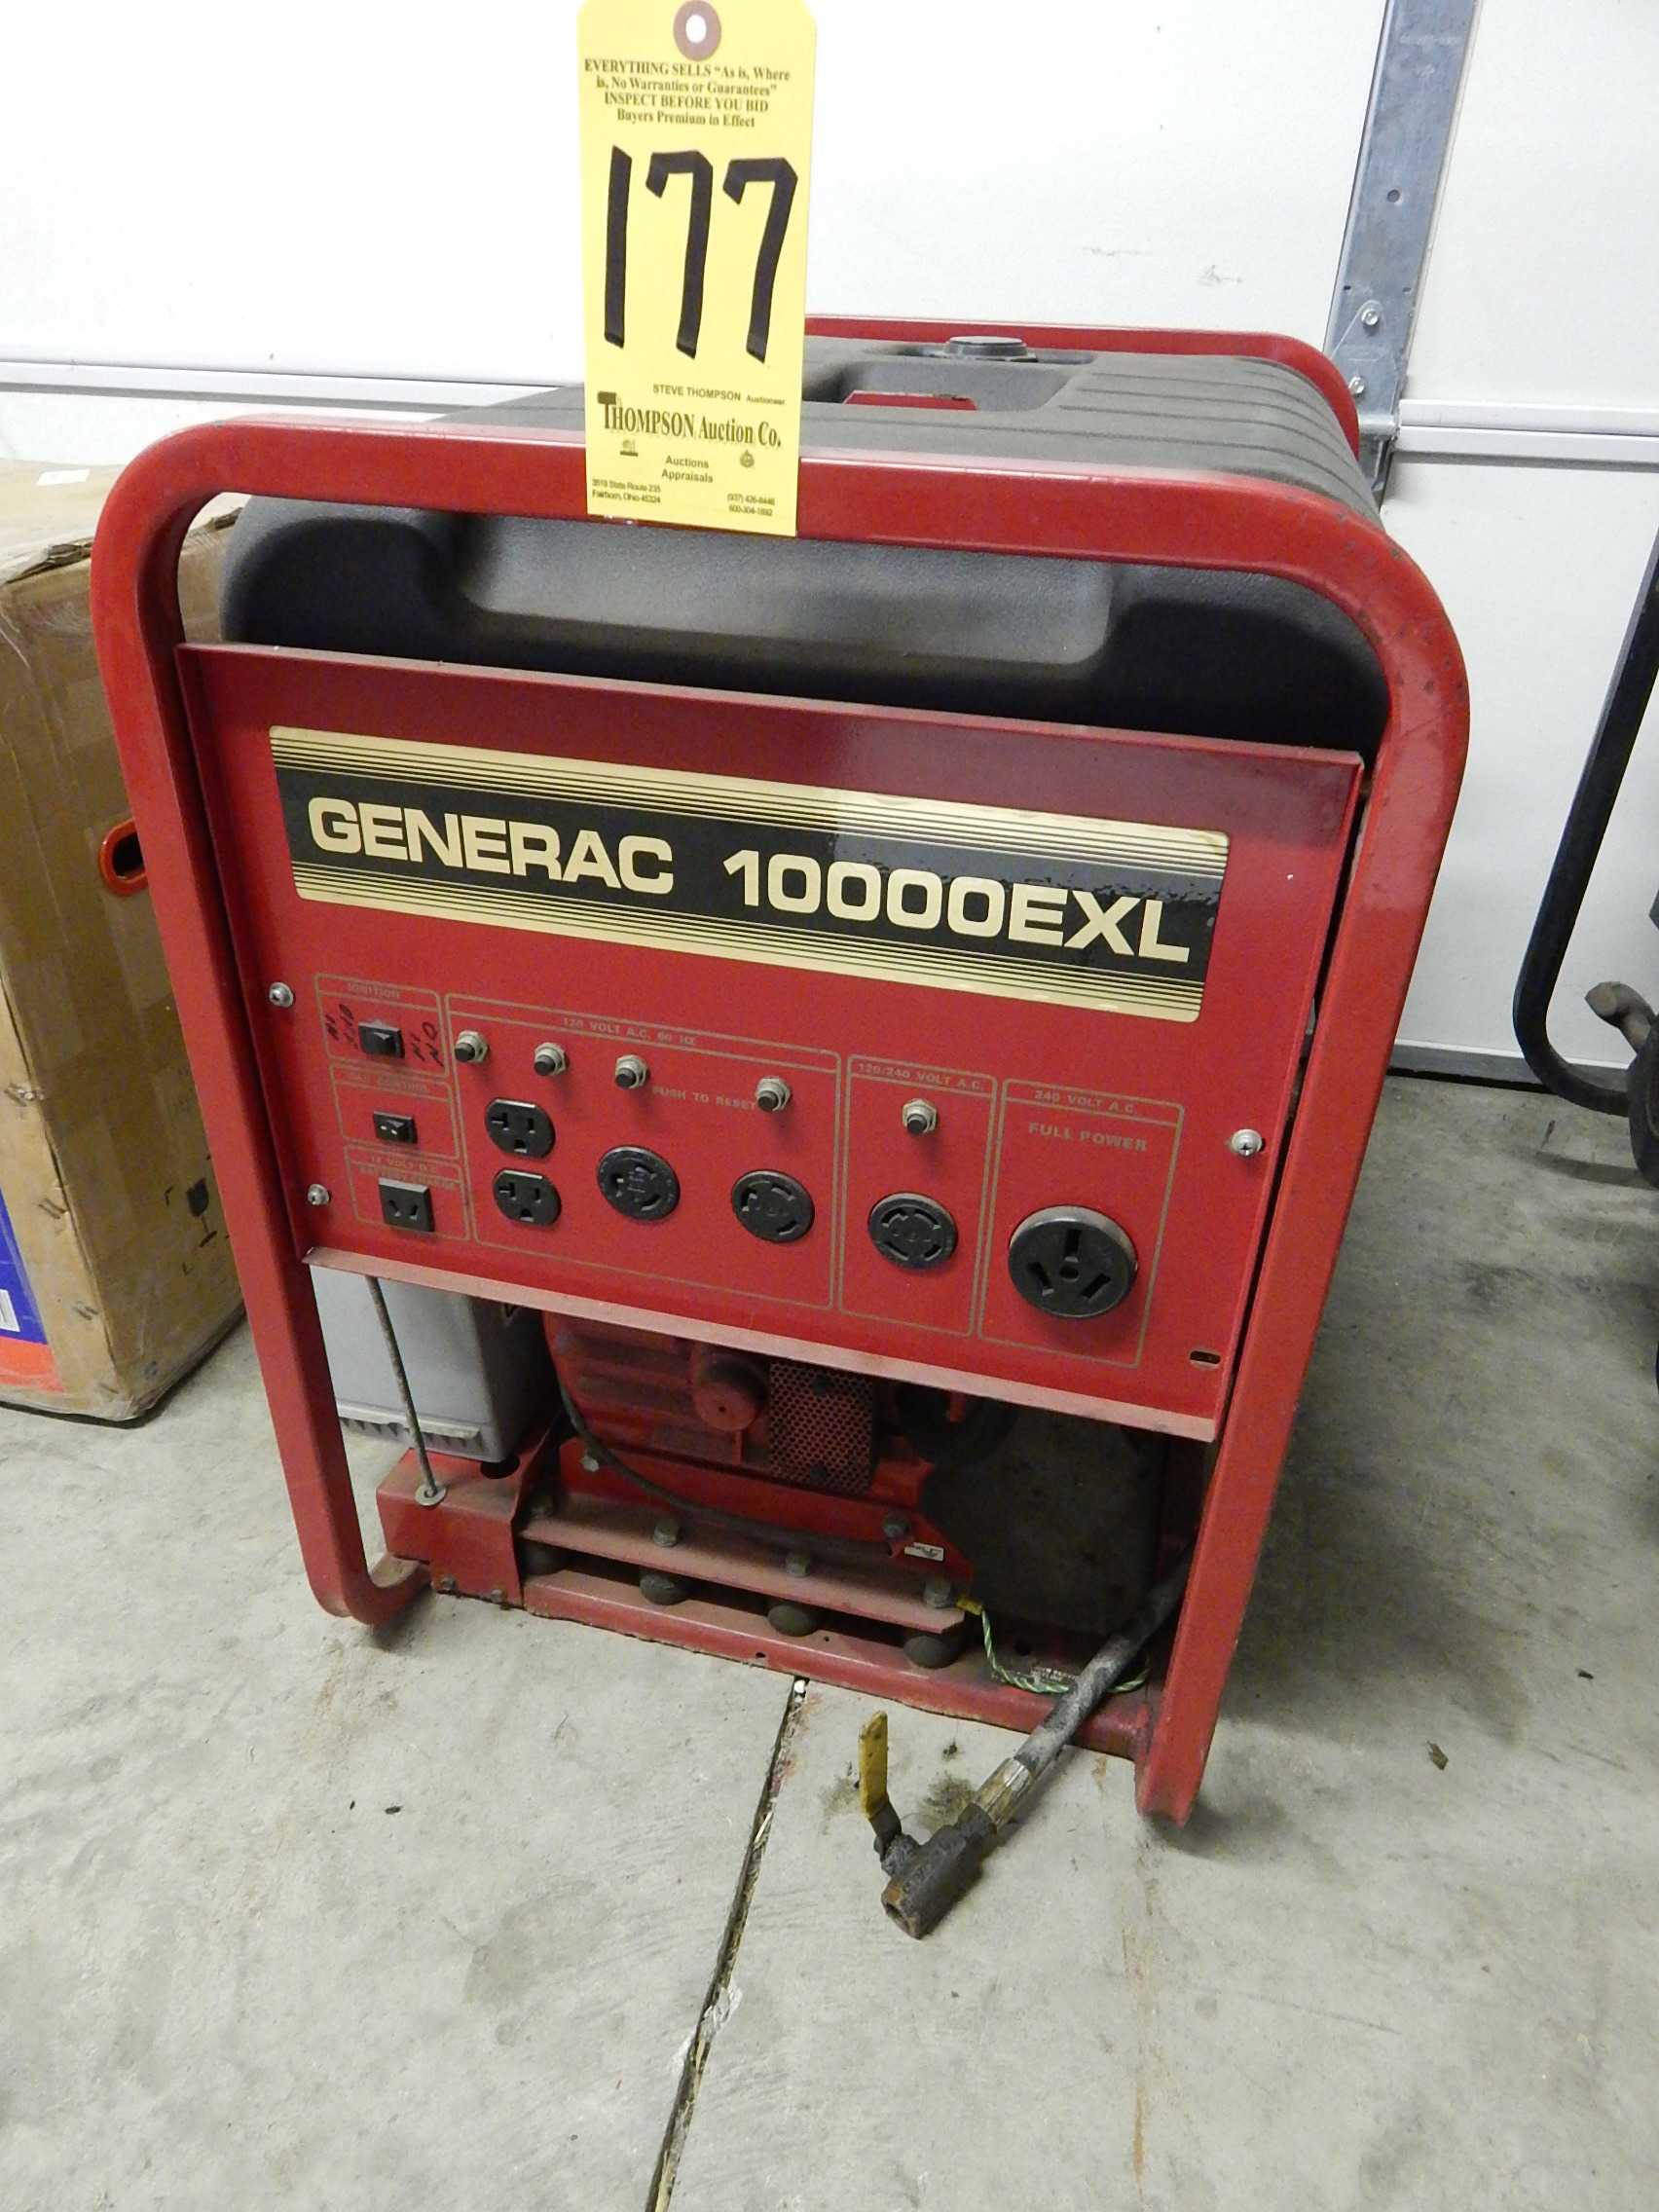 Generac 10000exl doityourself. Com community forums.